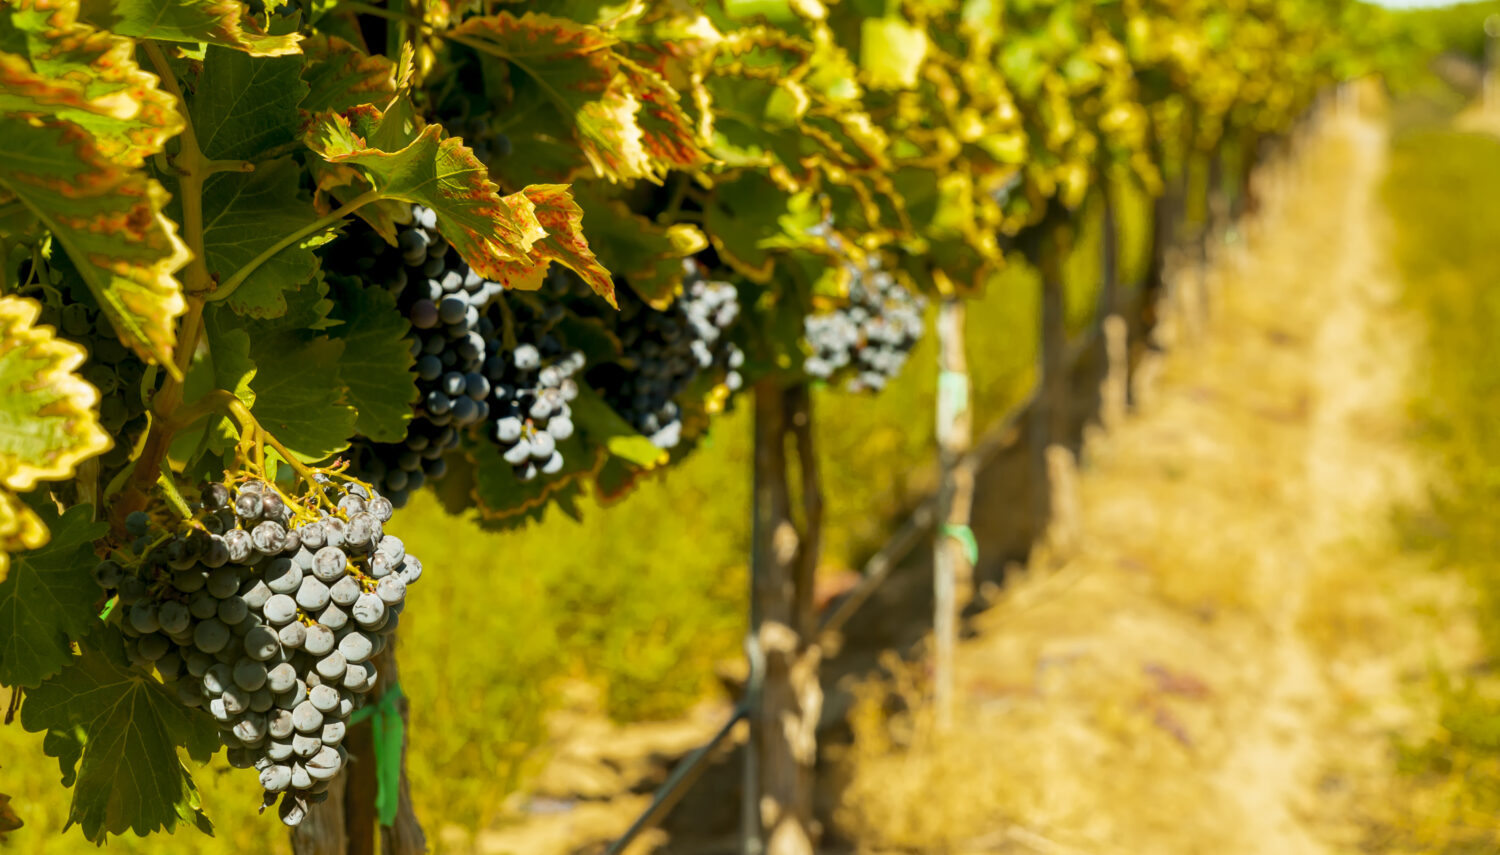 Bright sunlight hits dusty purple wine grapes hanging on a leafy green vine.